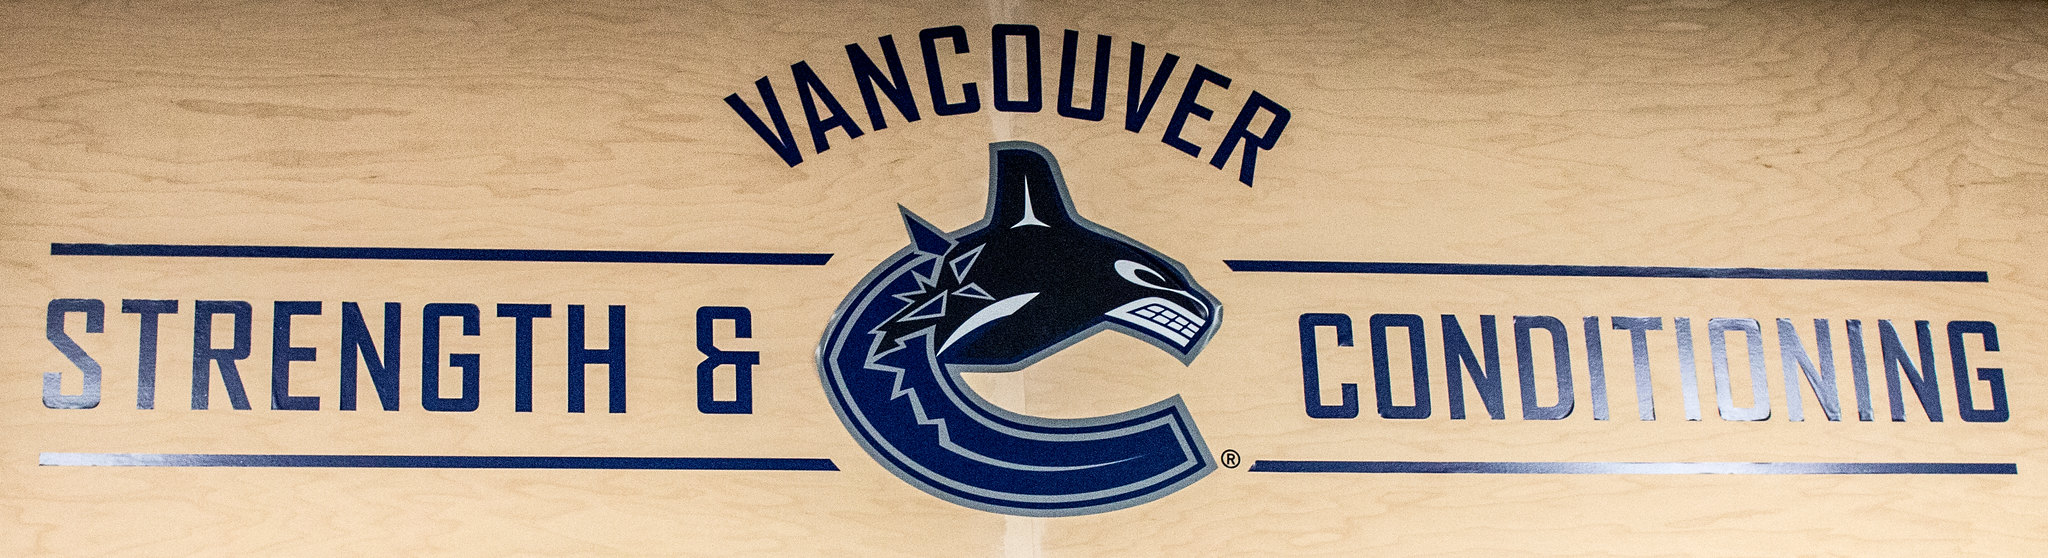 Vancouver Canucks Training Room Strength